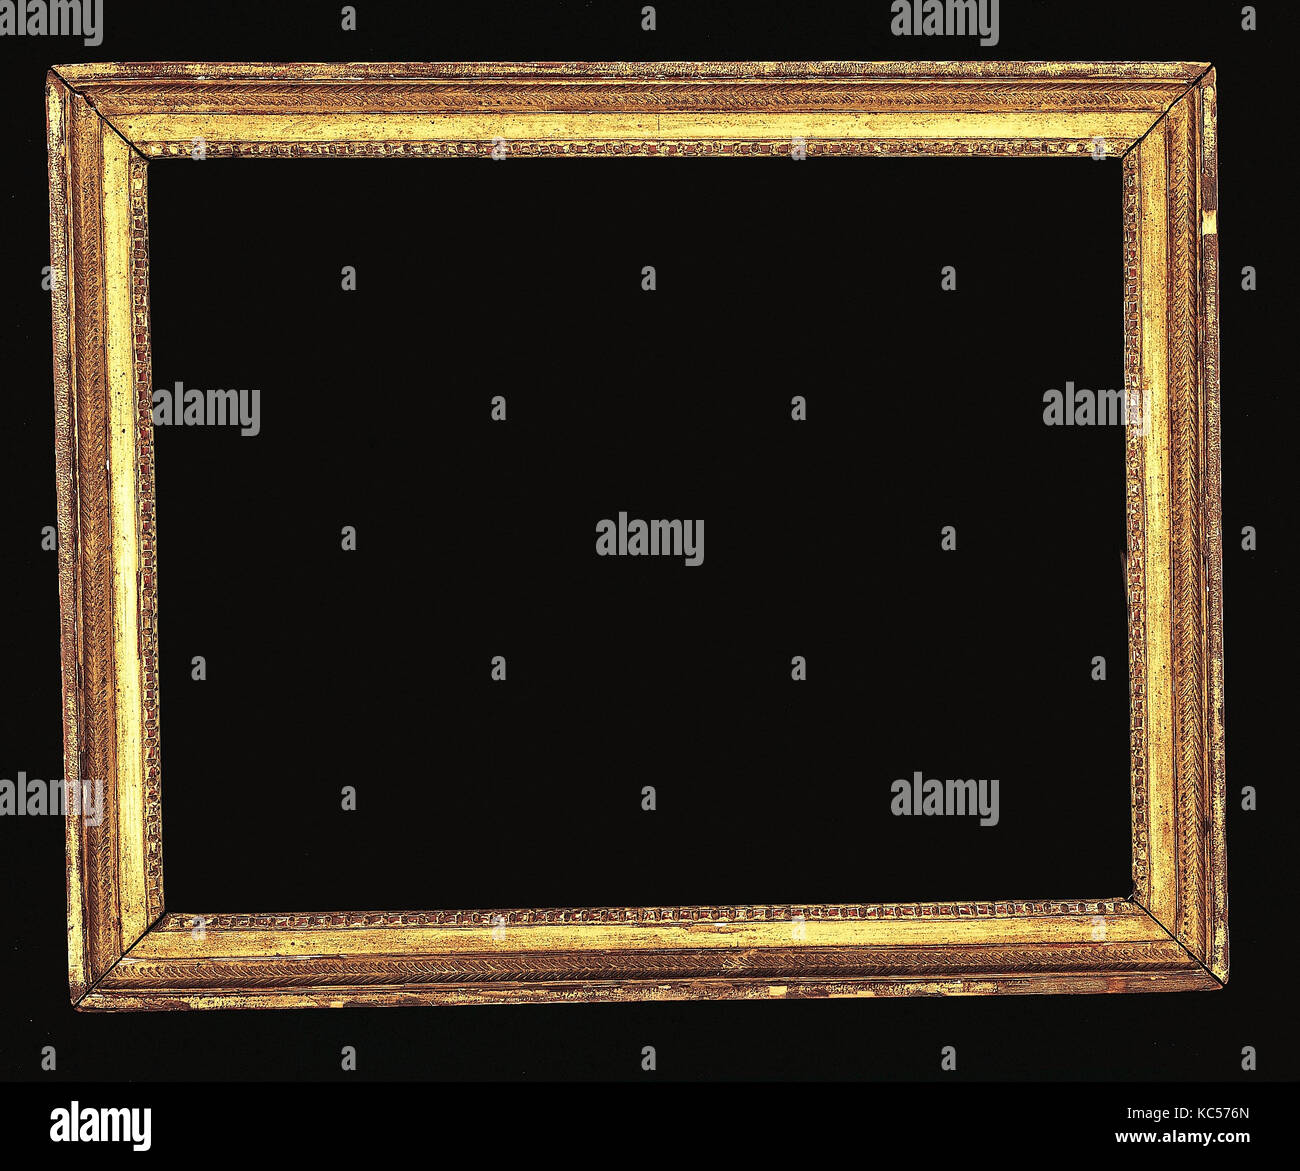 Cassetta frame, 1770–80, Southern France (?), Softwood, 49.2 x 61, 39.5 x 51.8, 41.5 x 53.4 cm., Frames - Stock Image